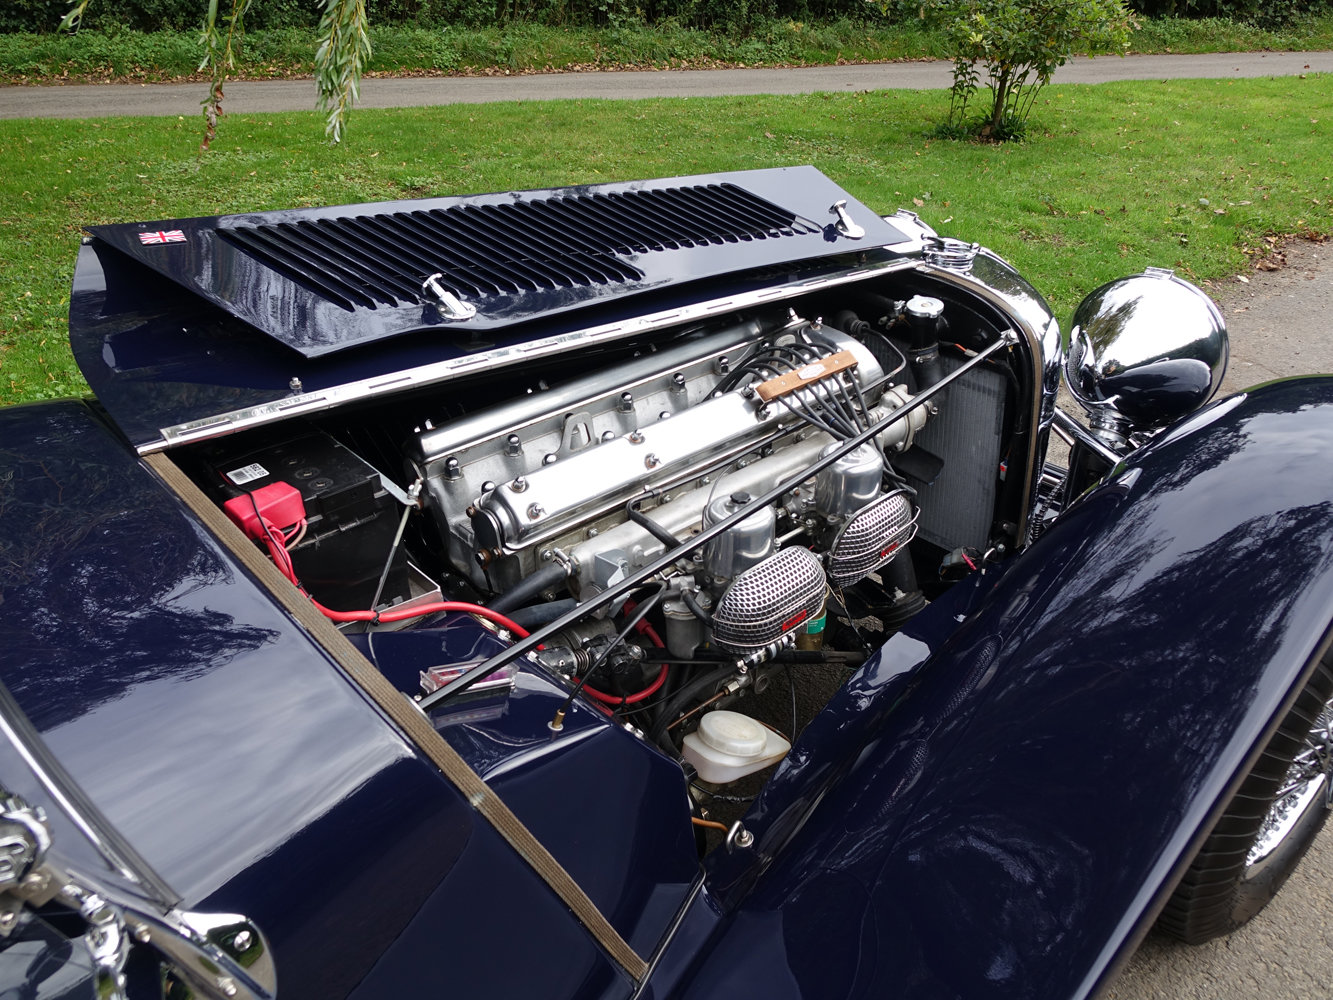 Suffolk Jaguar SS100 4.2 Top specification 6000 miles For Sale (picture 5 of 6)